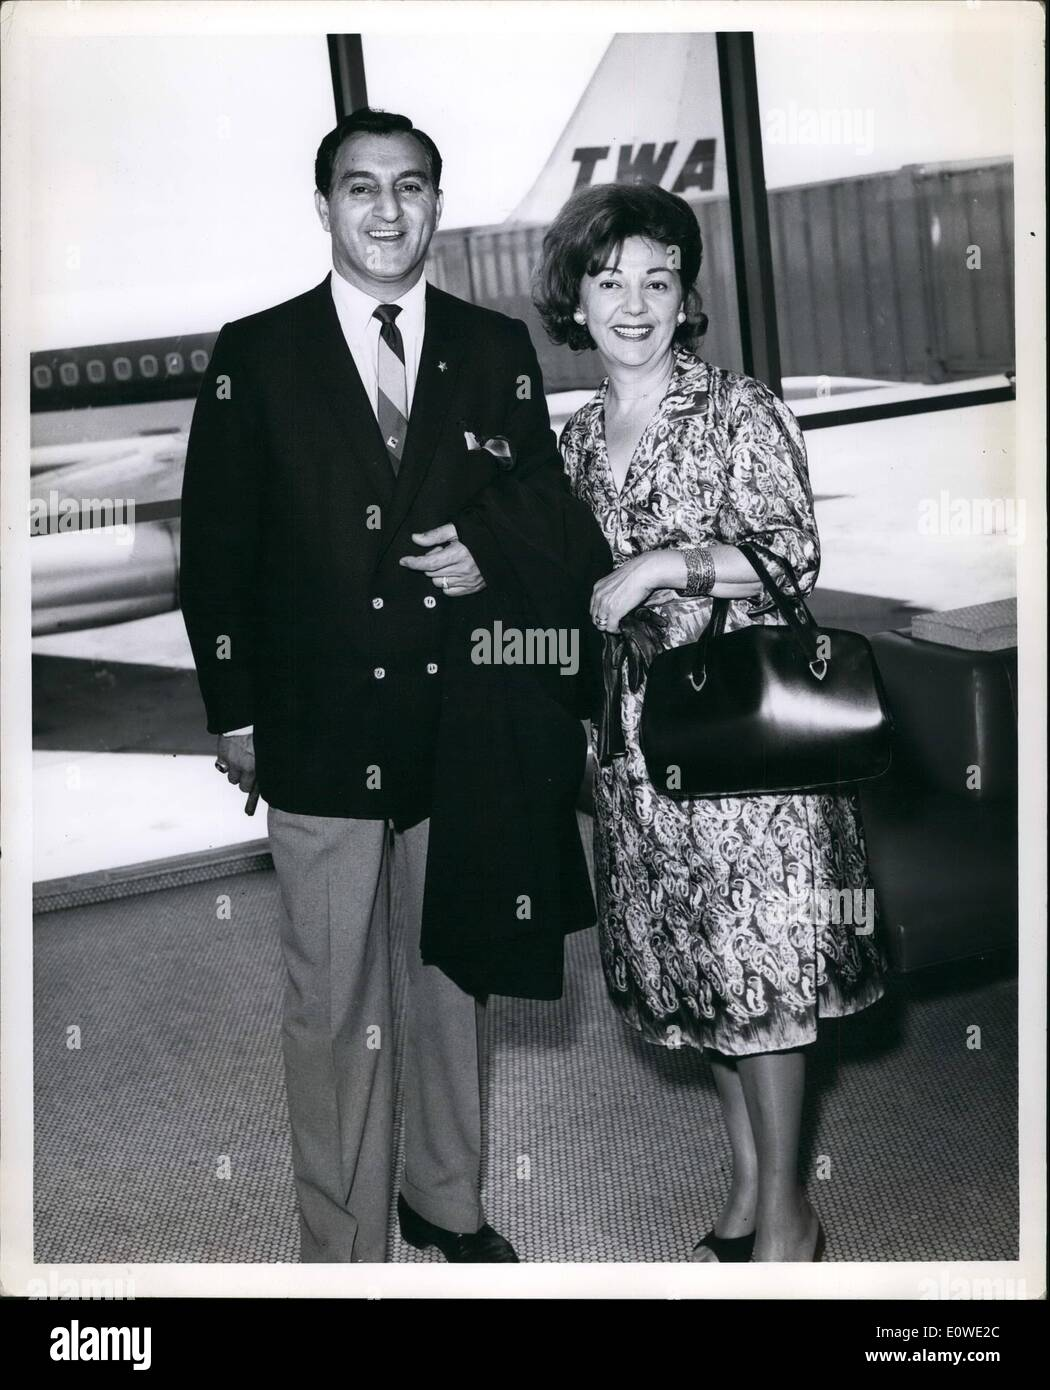 Jul. 07, 1962 - Comedian Thomas and his wife, Ross Marie, are shown prior to boarding a TWA Starstream for Los Angeles, en route home after 10 weeks touring Europe, where he photographed 8 TV shows. - Stock Image